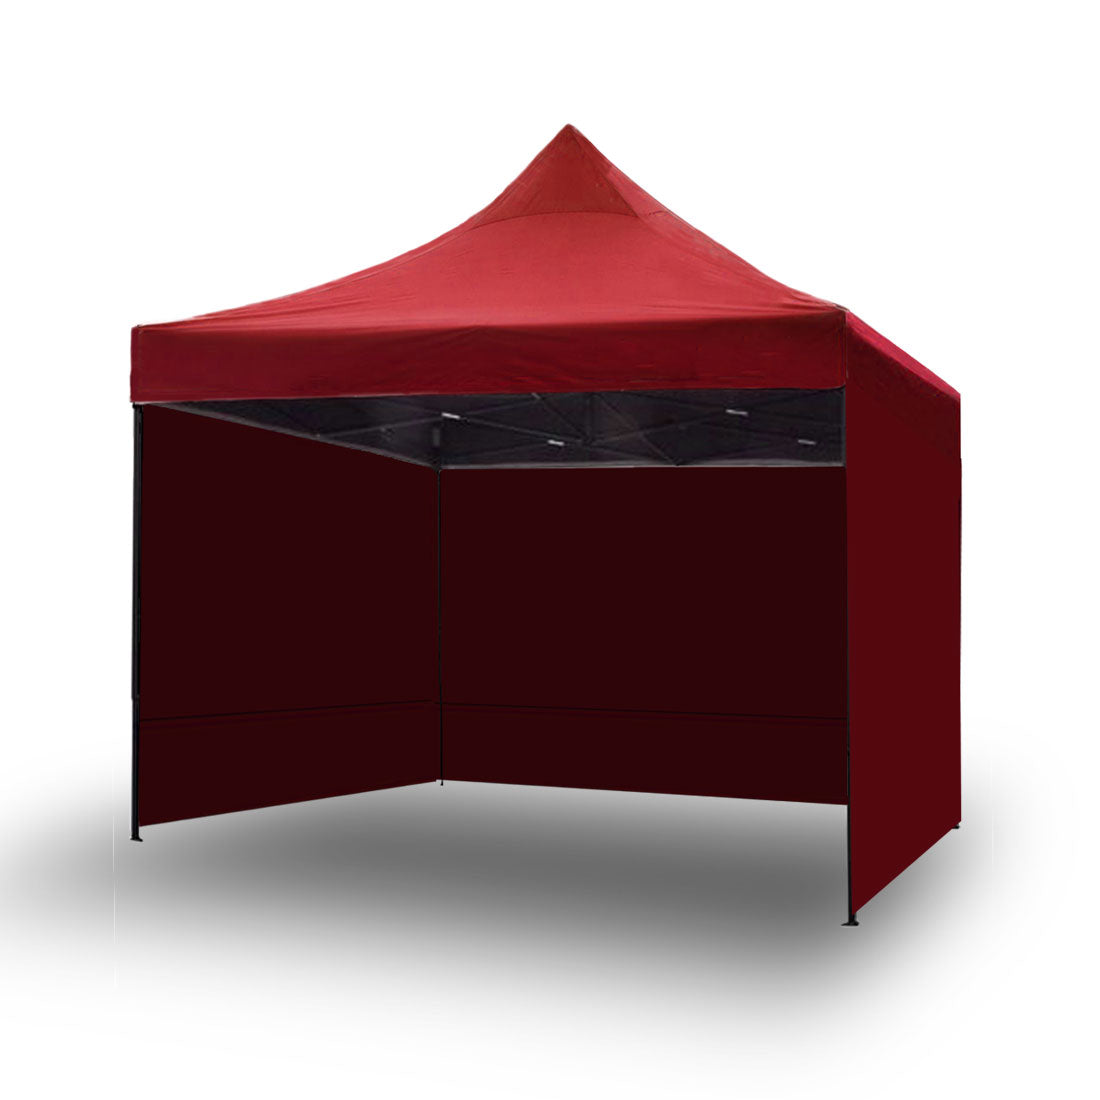 3x3m Pop Up Gazebo Outdoor Tent Folding Marquee Party Camping Market Canopy w/ Side Wall - red 的副本